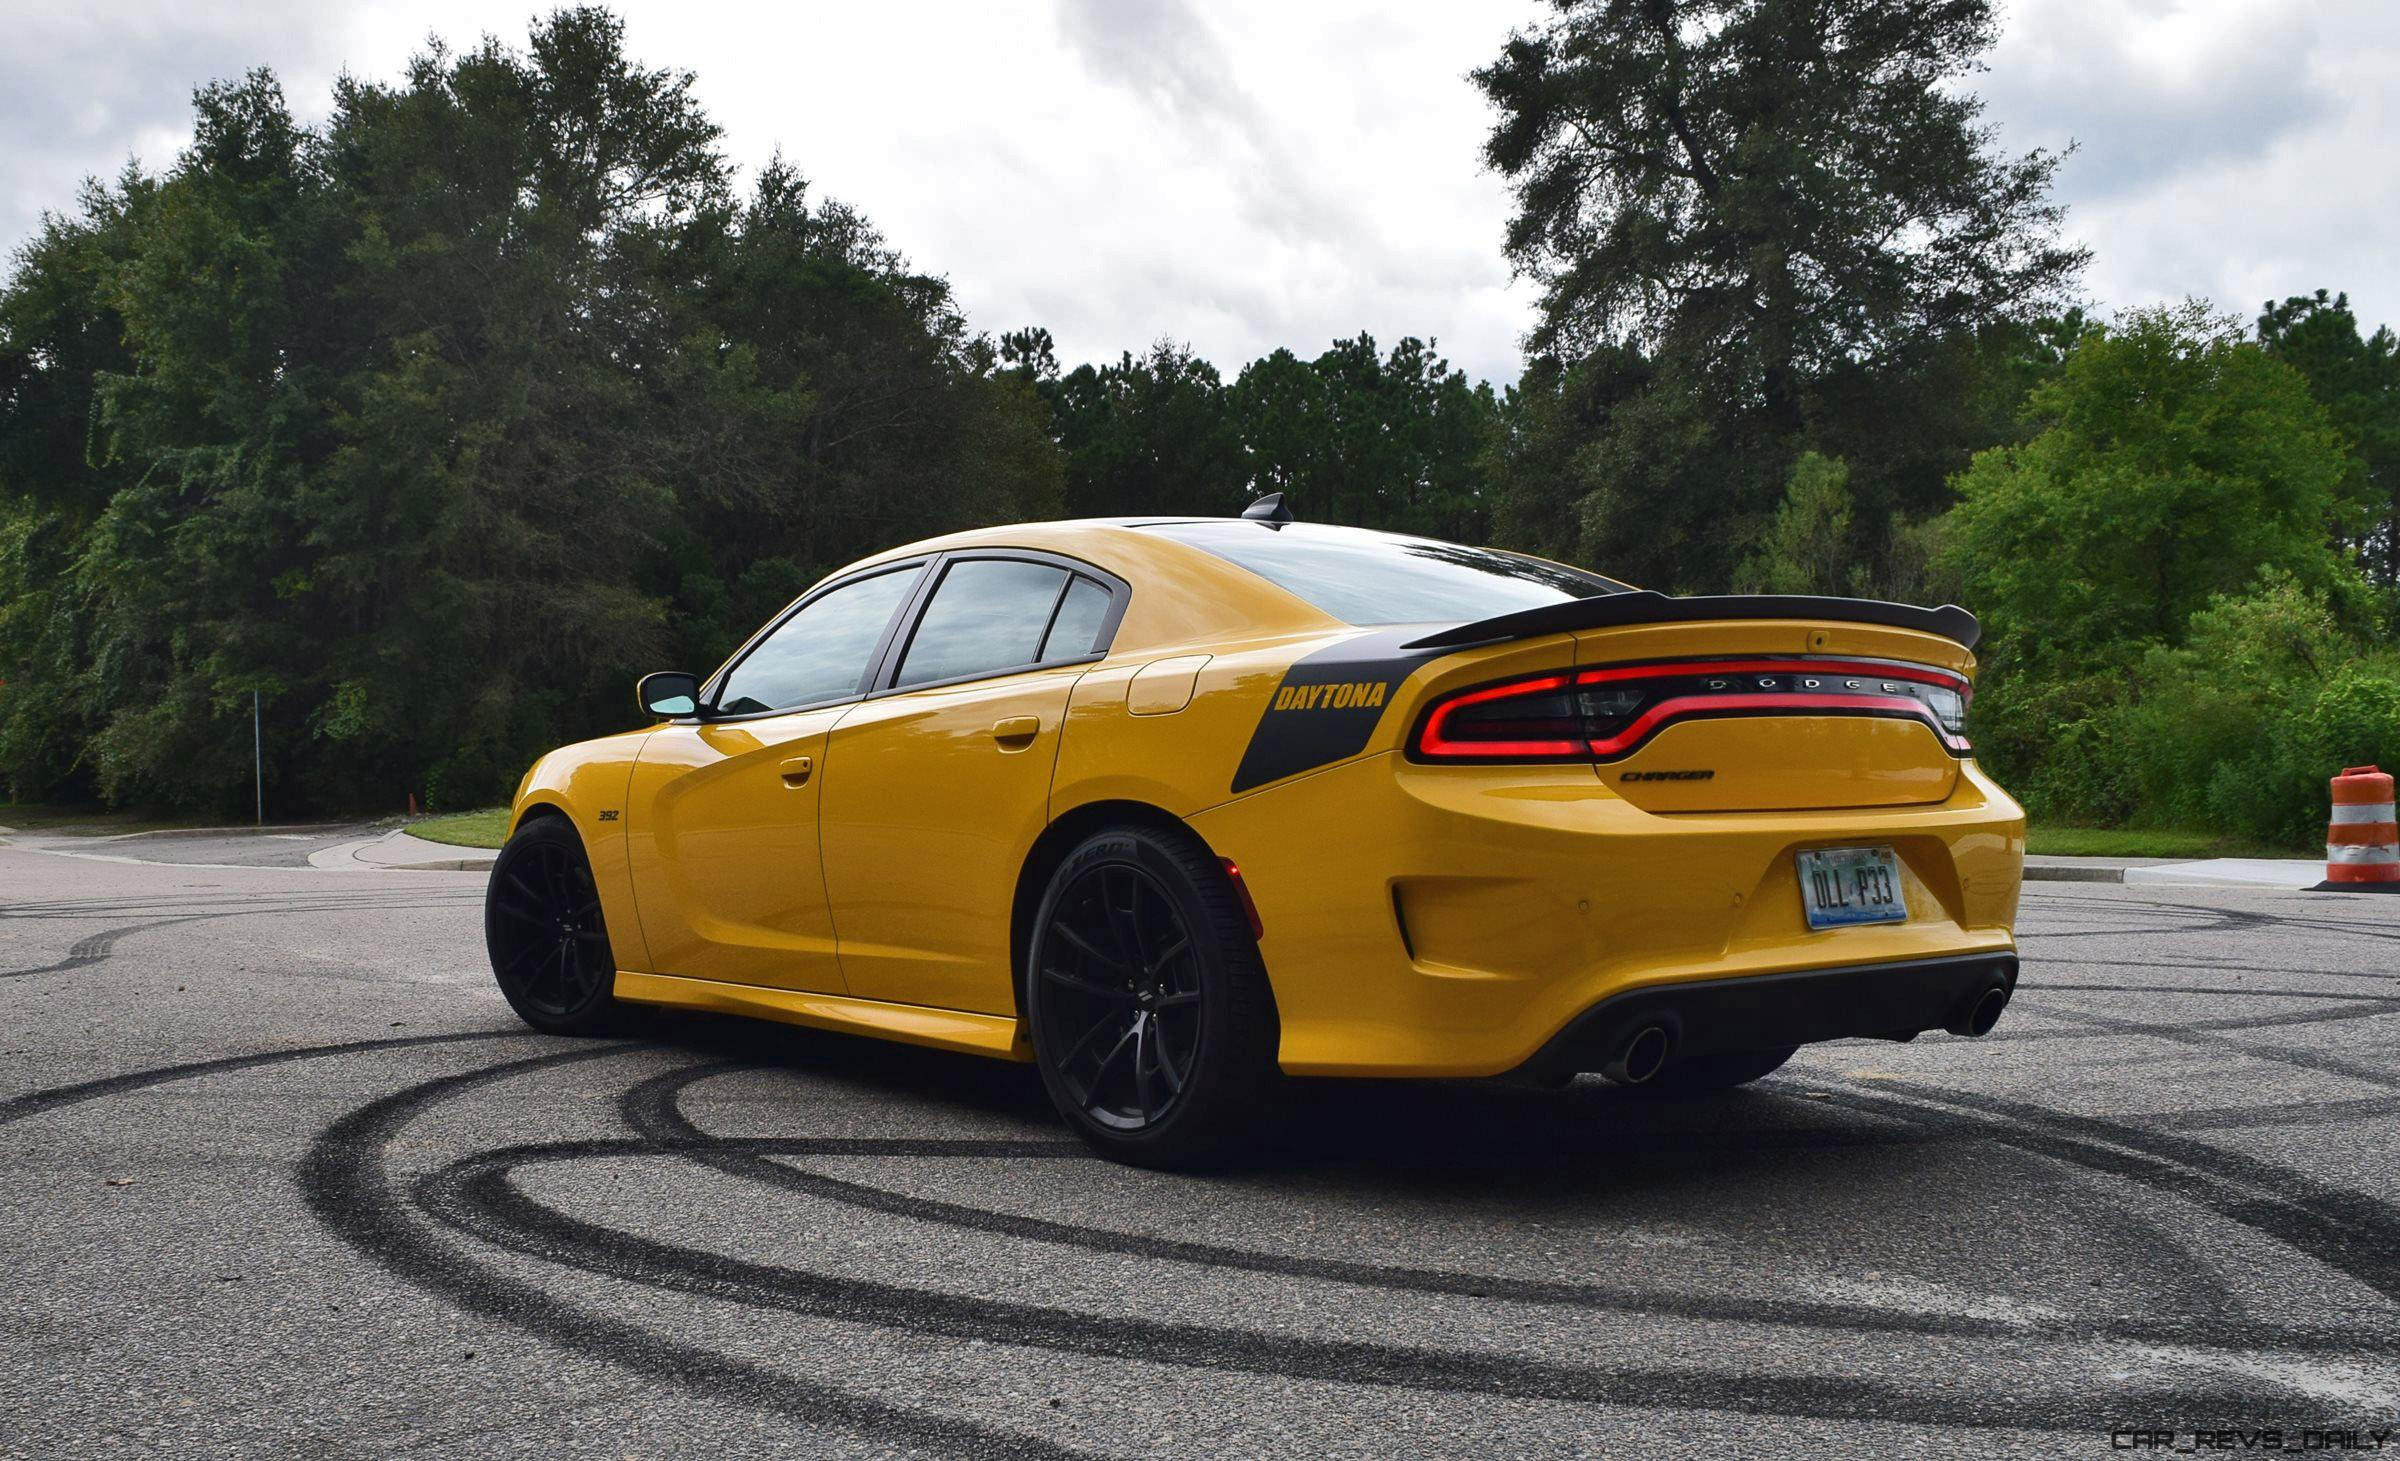 2017 Dodge Charger Daytona 392 Hd Road Test Review Car Shopping